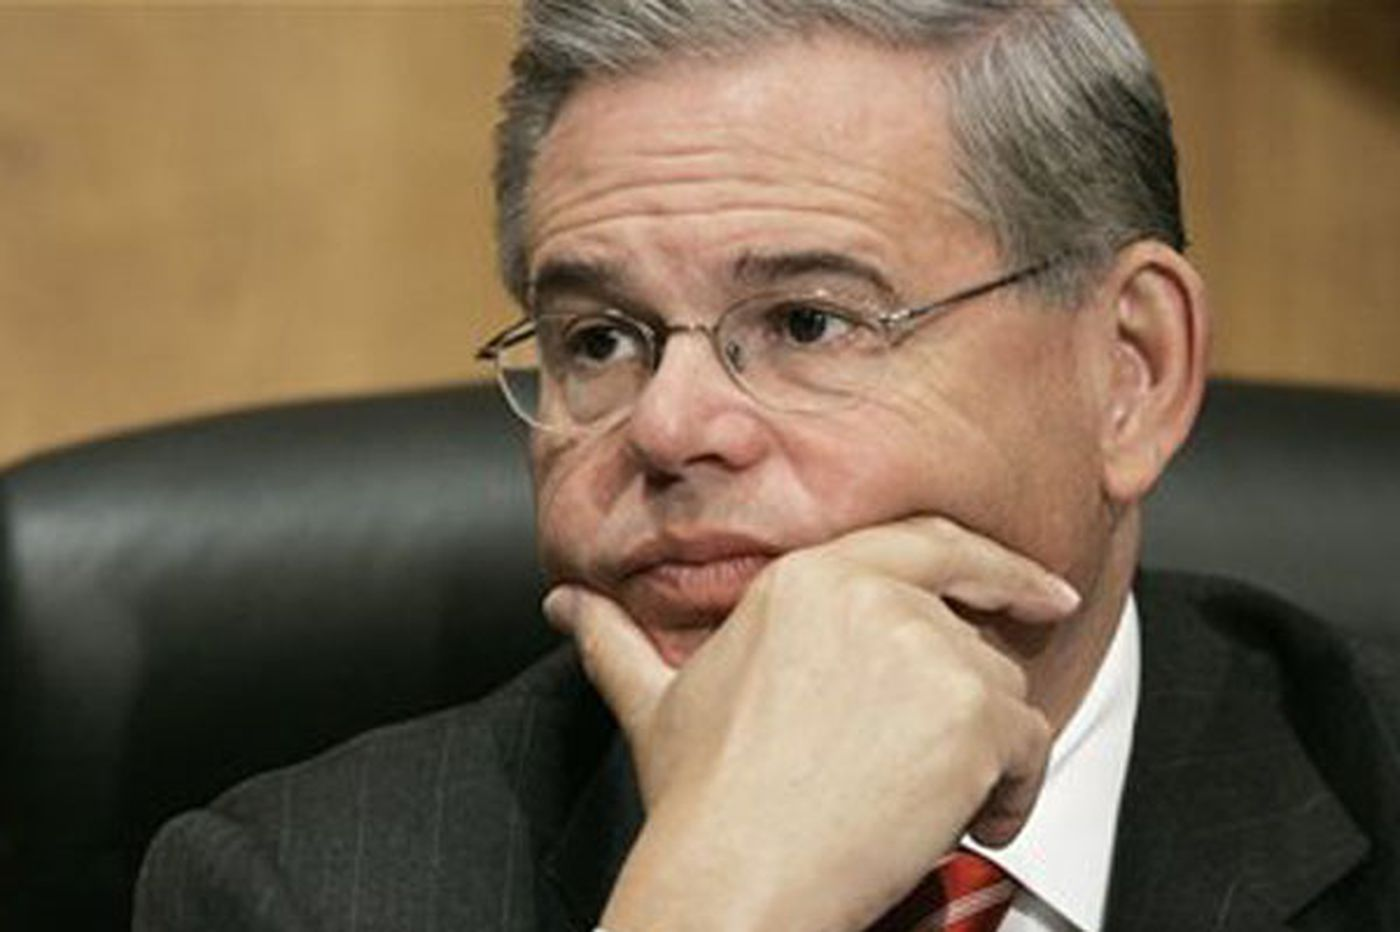 Intern on Menendez's staff was undocumented alien and sex offender